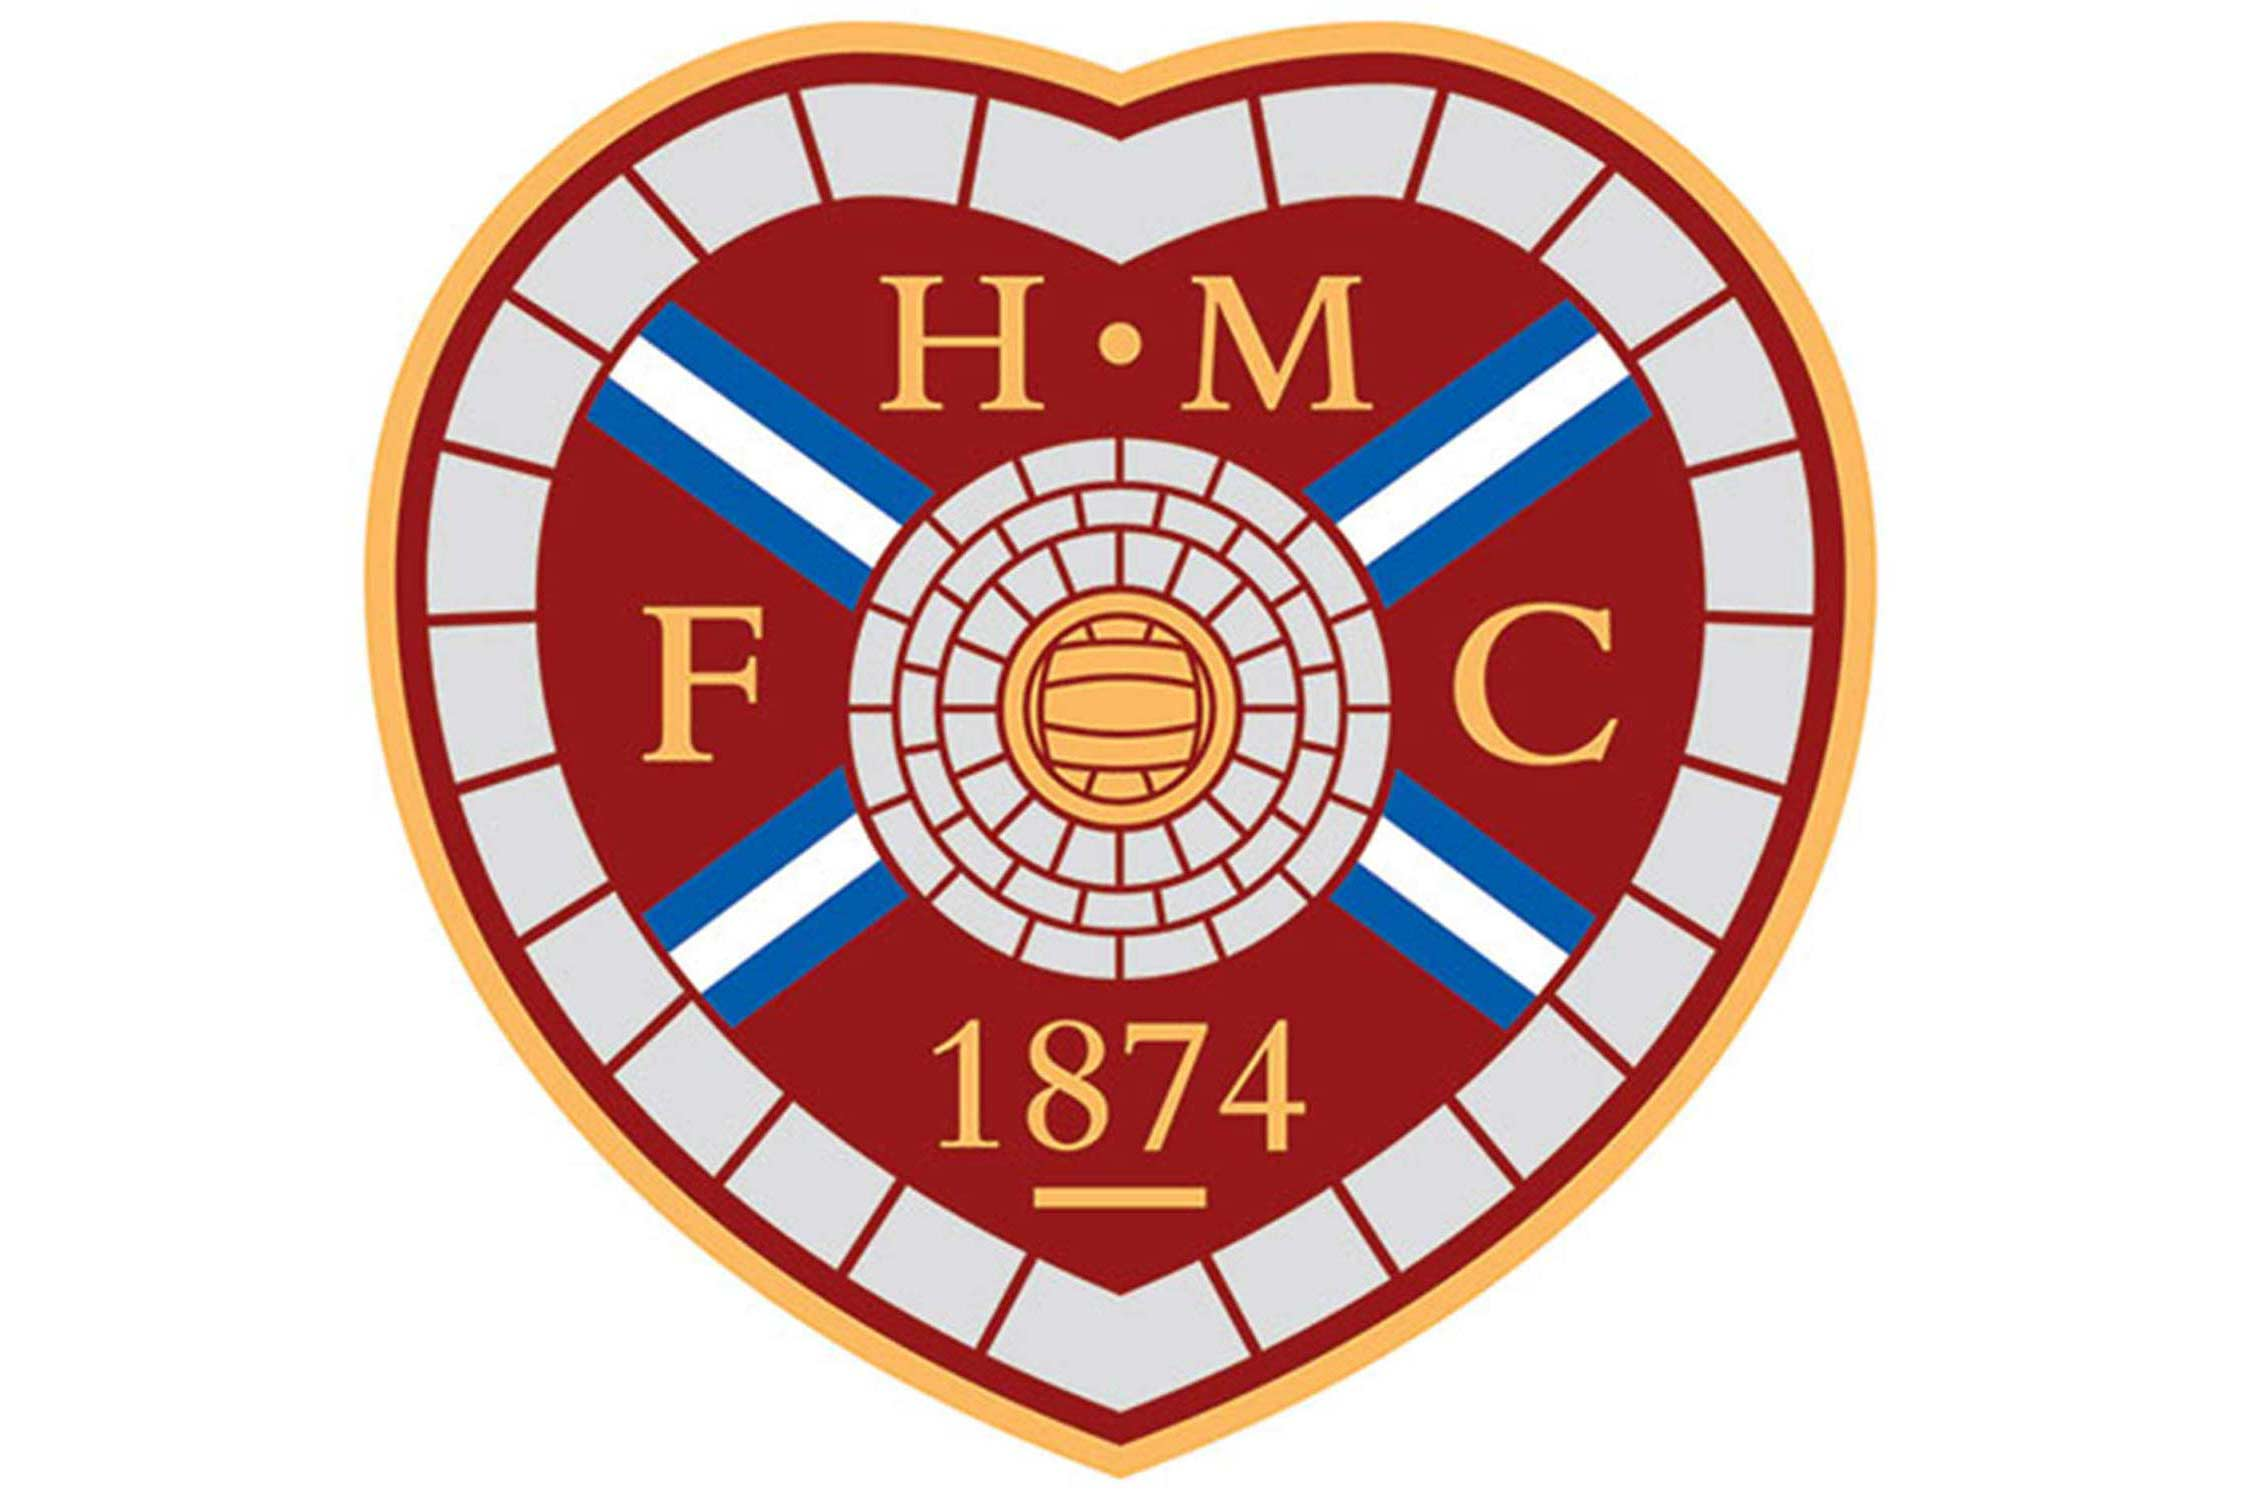 Based in Edinburgh, Heart of Midlothian's crest features bricks around the edge of a familiar heart shape.